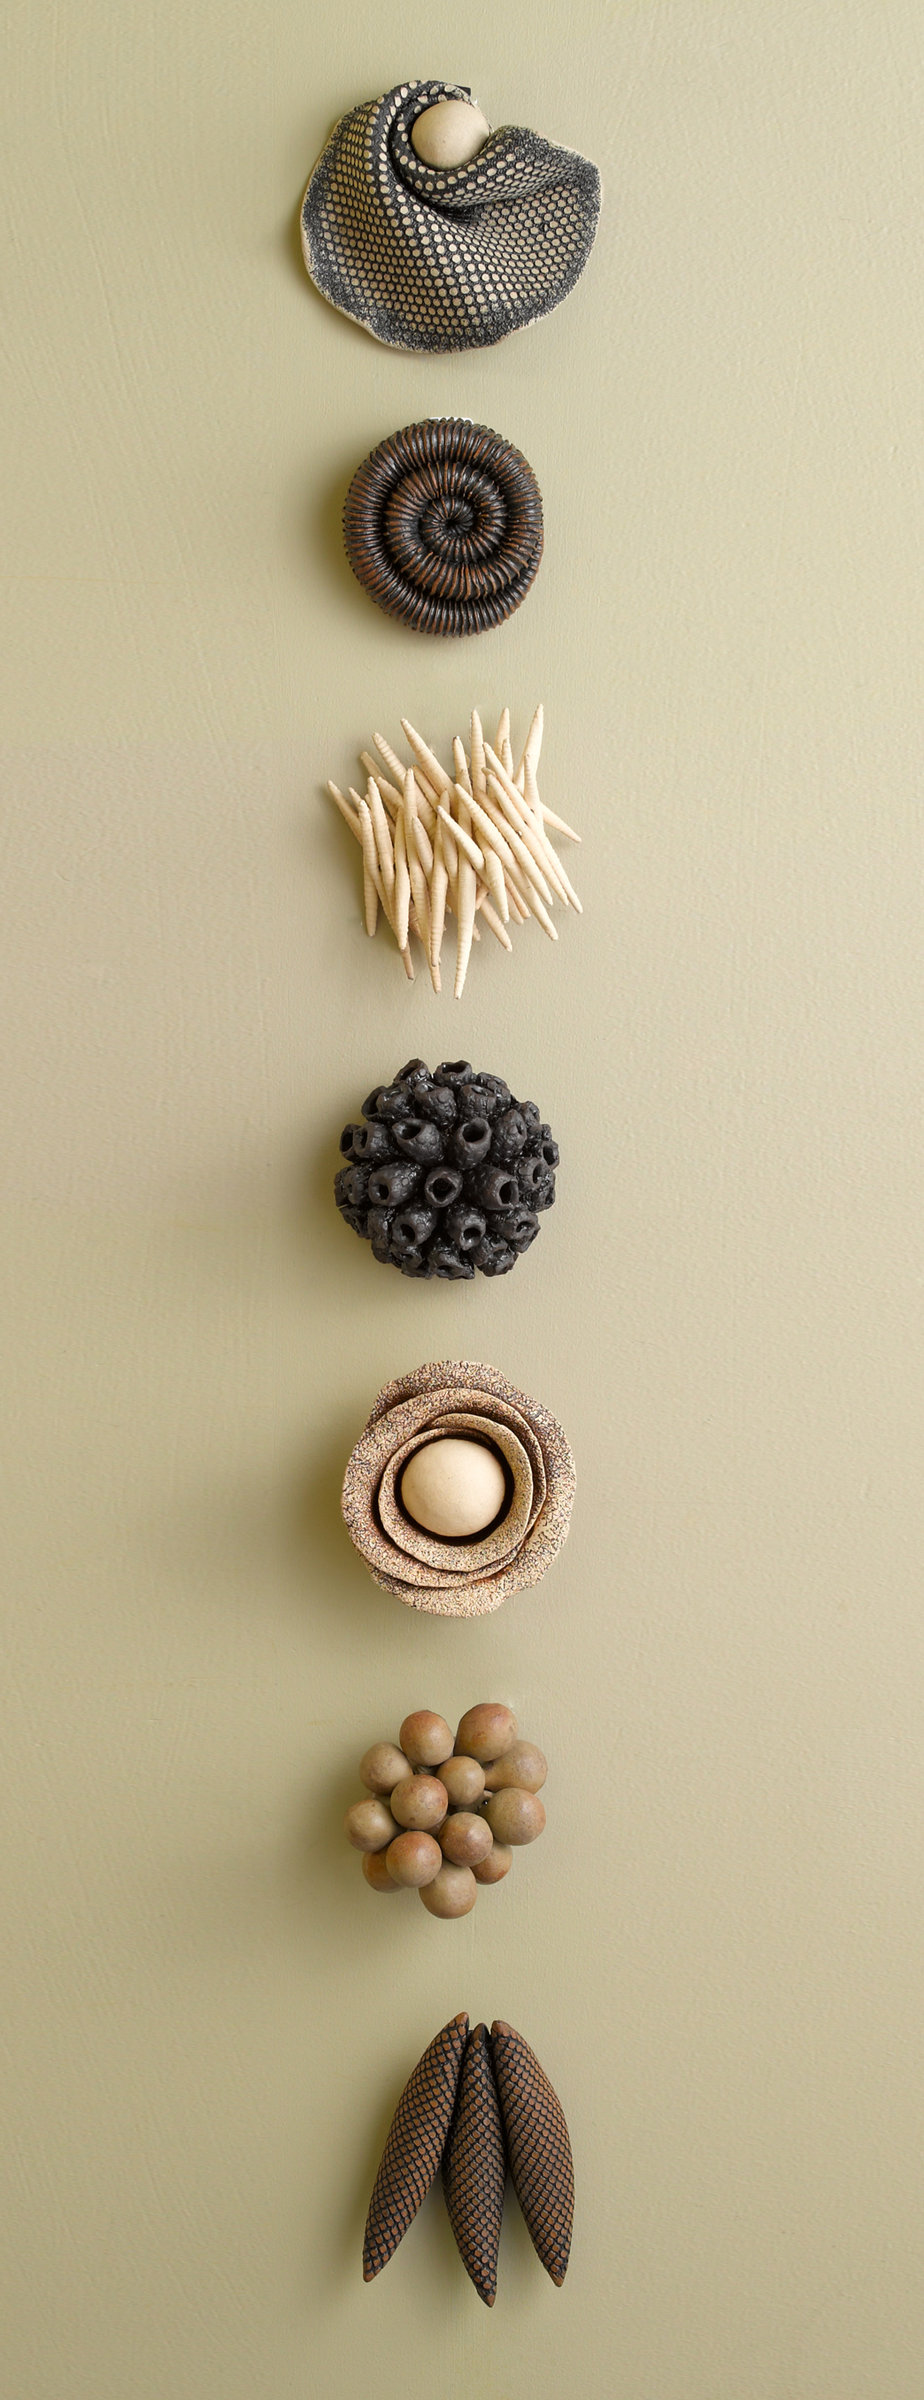 Ceramic Artifacts - Ceramic Wall Art - by Kelly Jean Ohl